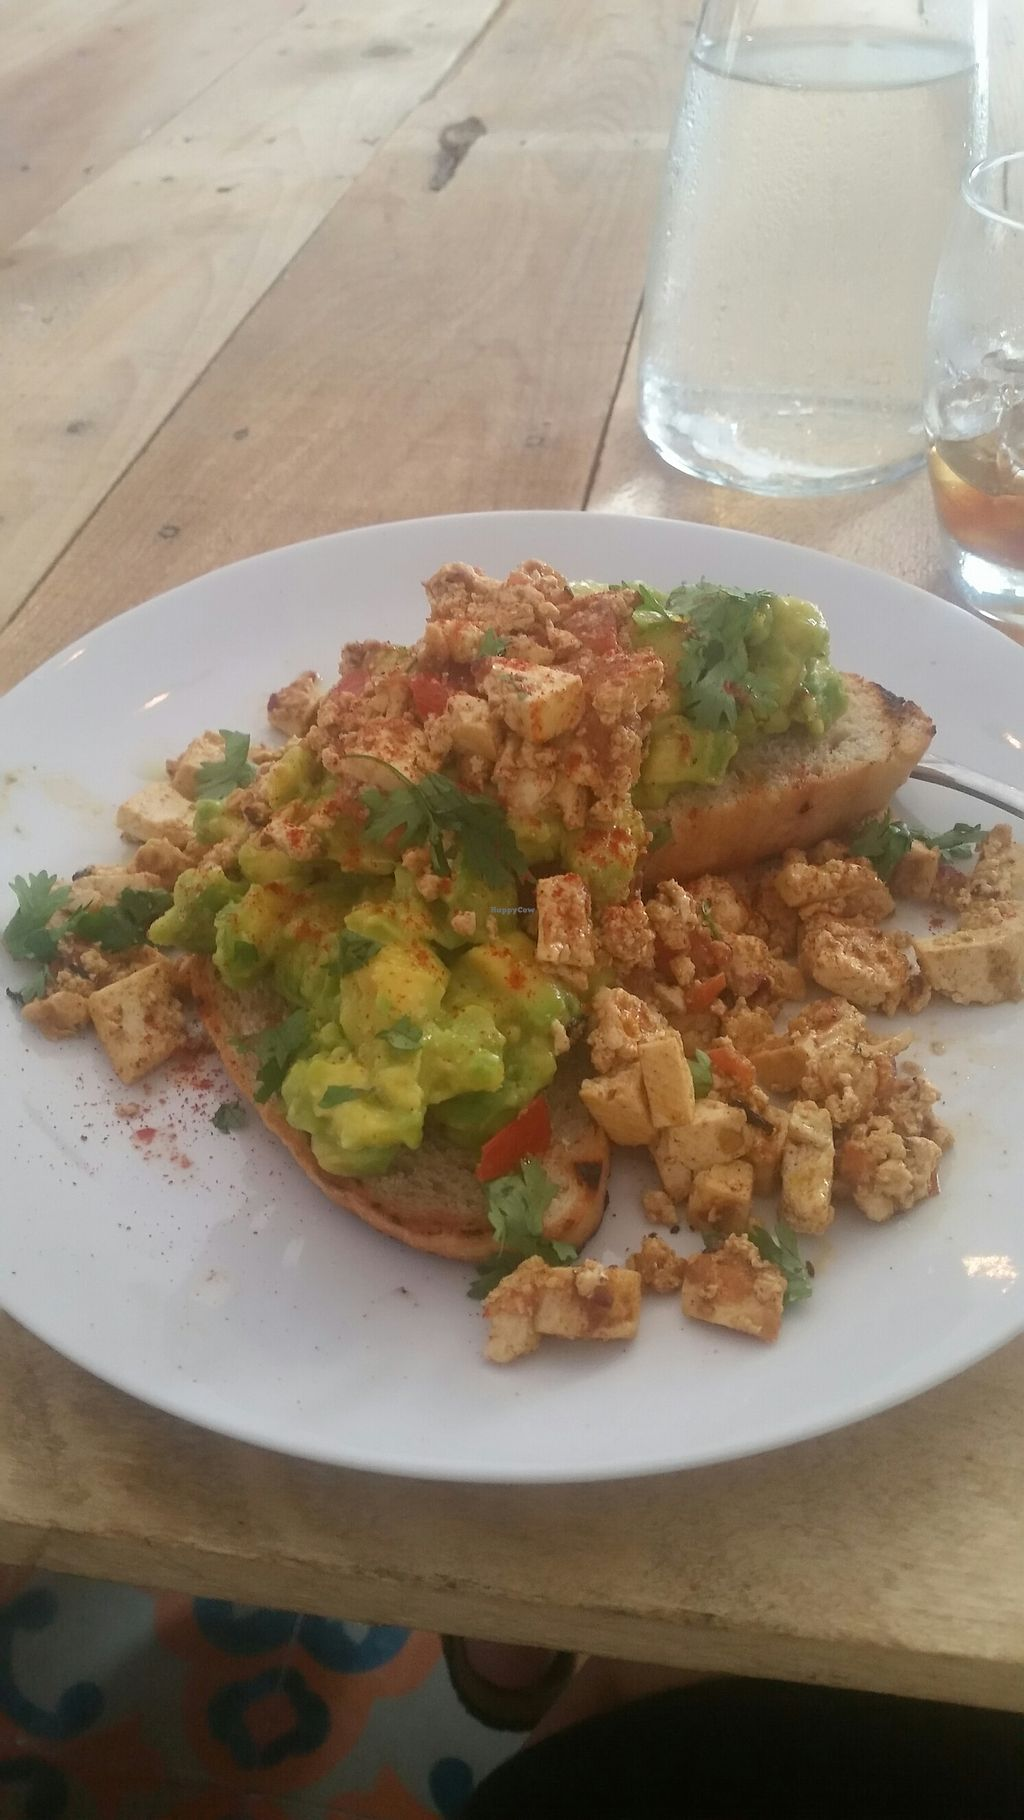 "Photo of Cafe Stepping Stone  by <a href=""/members/profile/LauraCatattack"">LauraCatattack</a> <br/>mashed avocado with tofu on toast <br/> July 29, 2017  - <a href='/contact/abuse/image/97416/286377'>Report</a>"